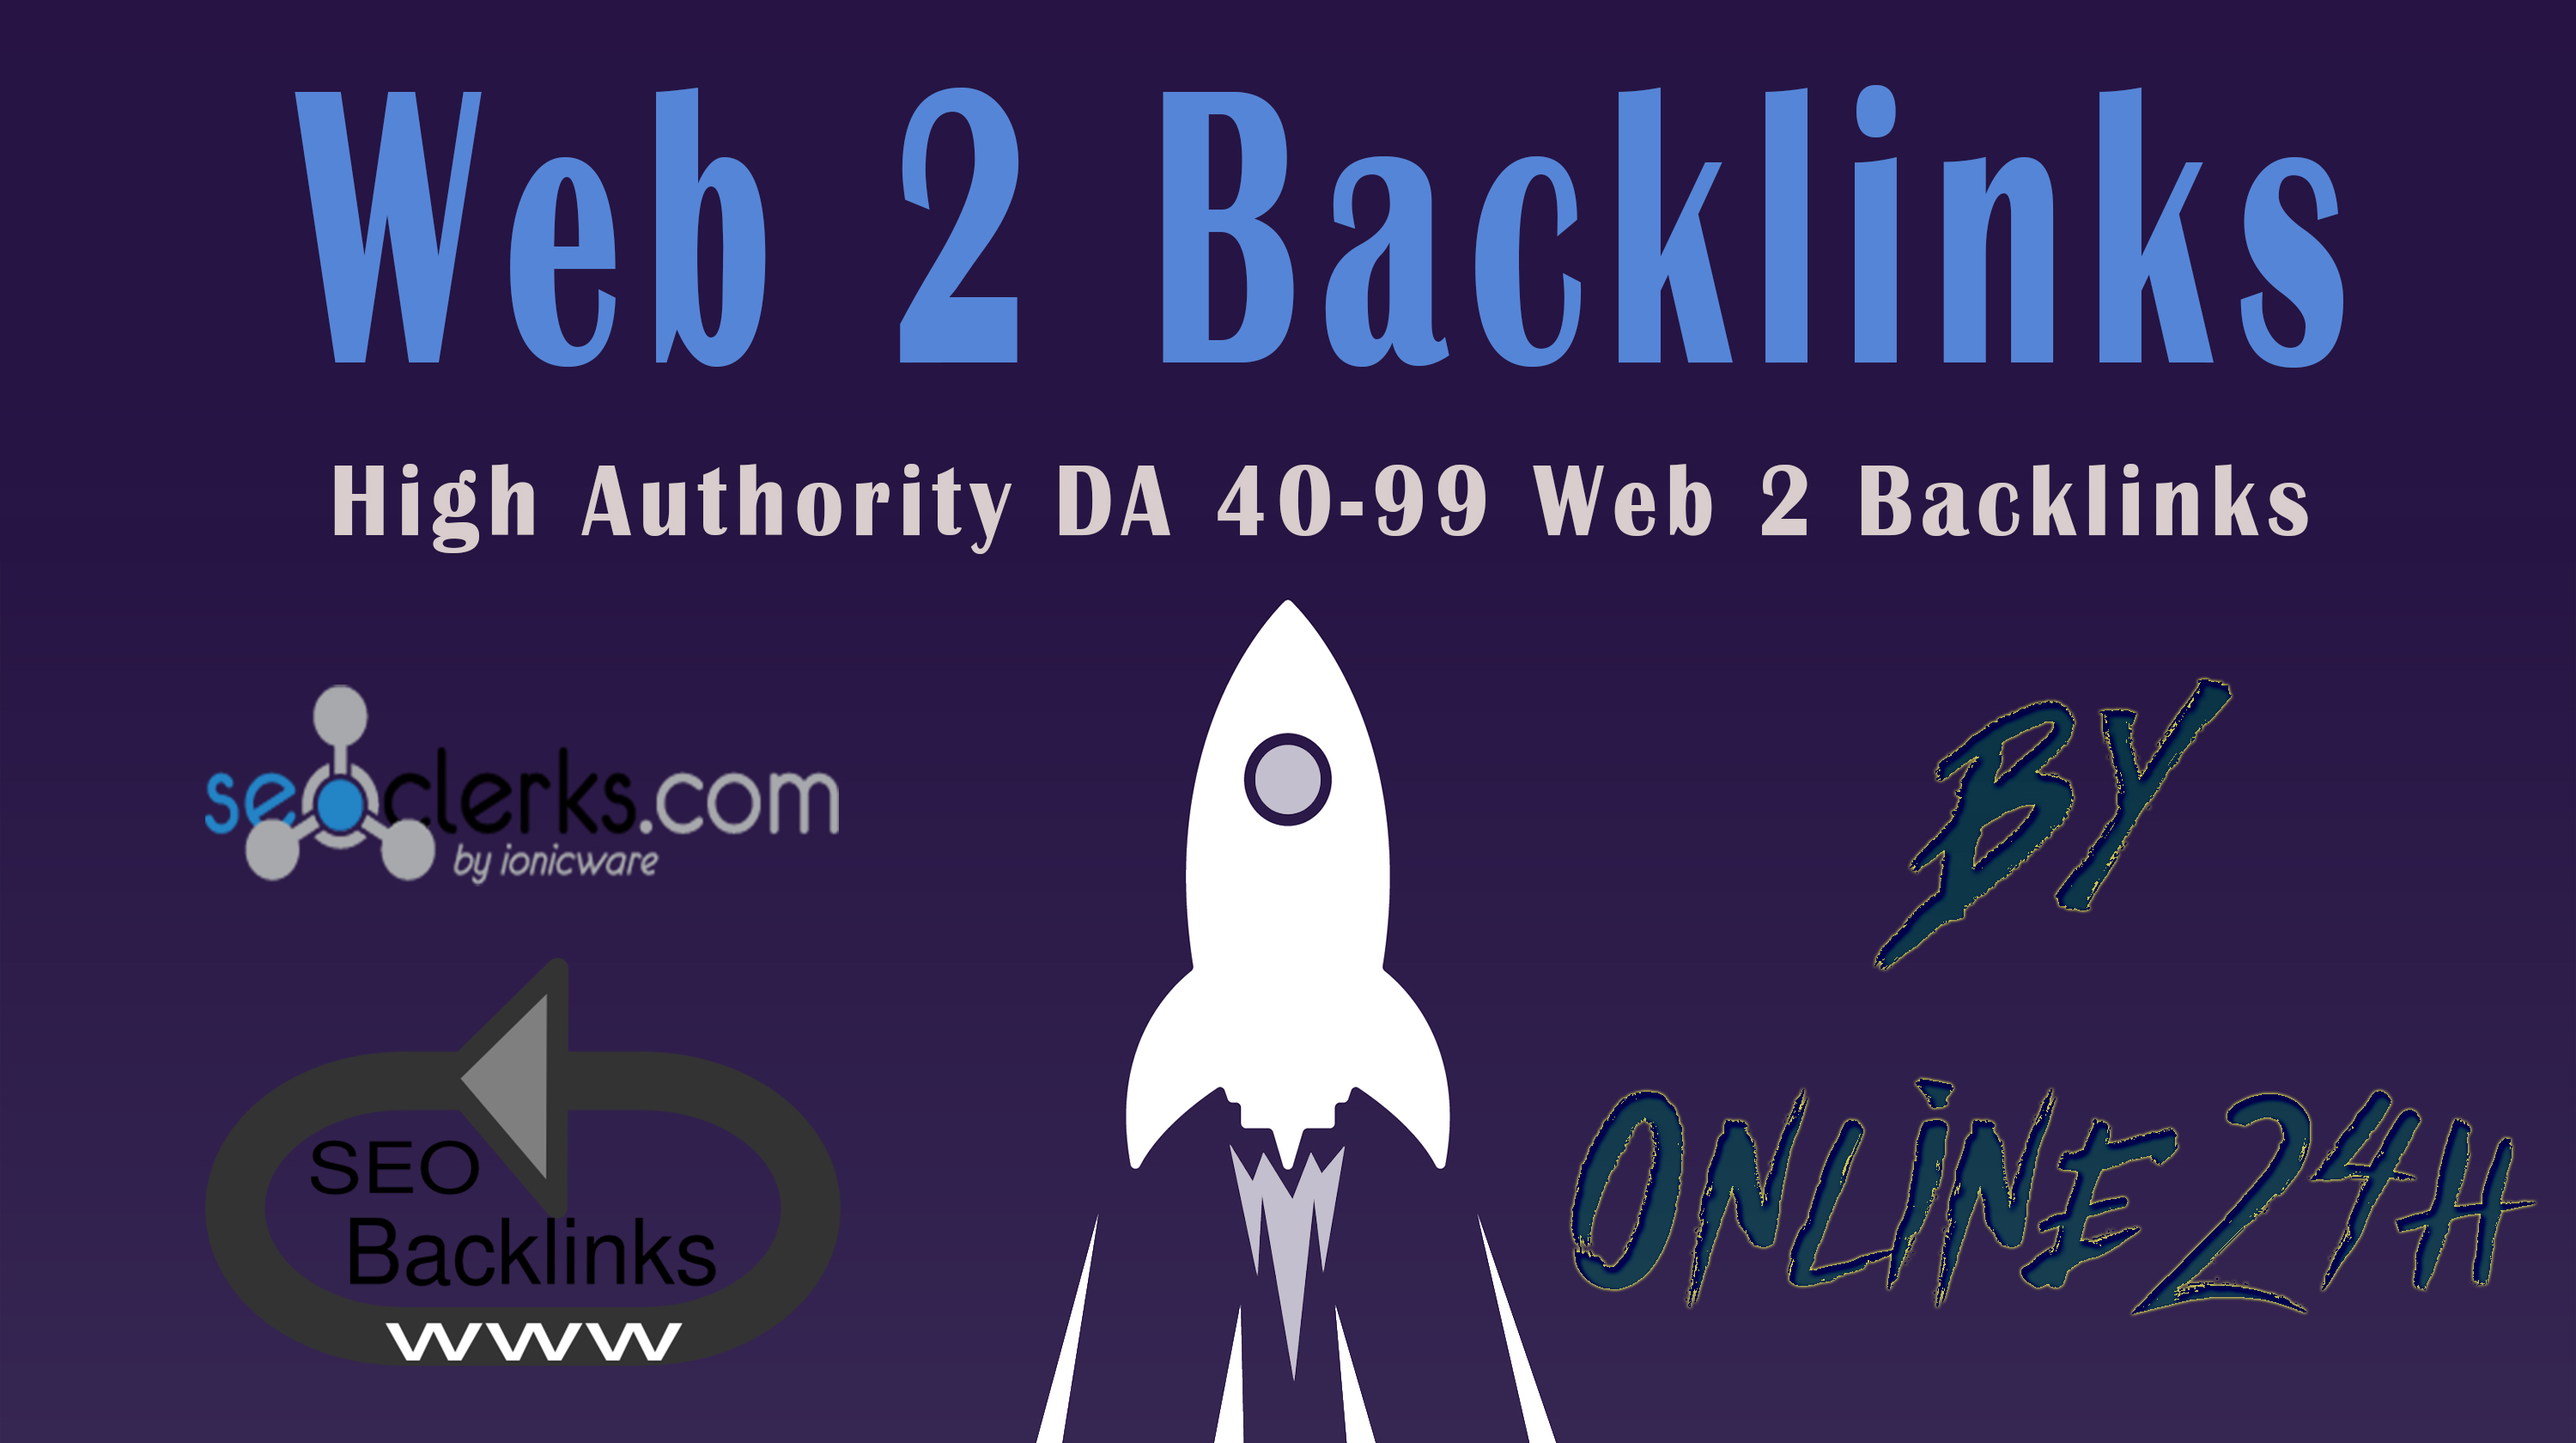 30+ High Authority DA 40-99 Web 2 Backlinks now only